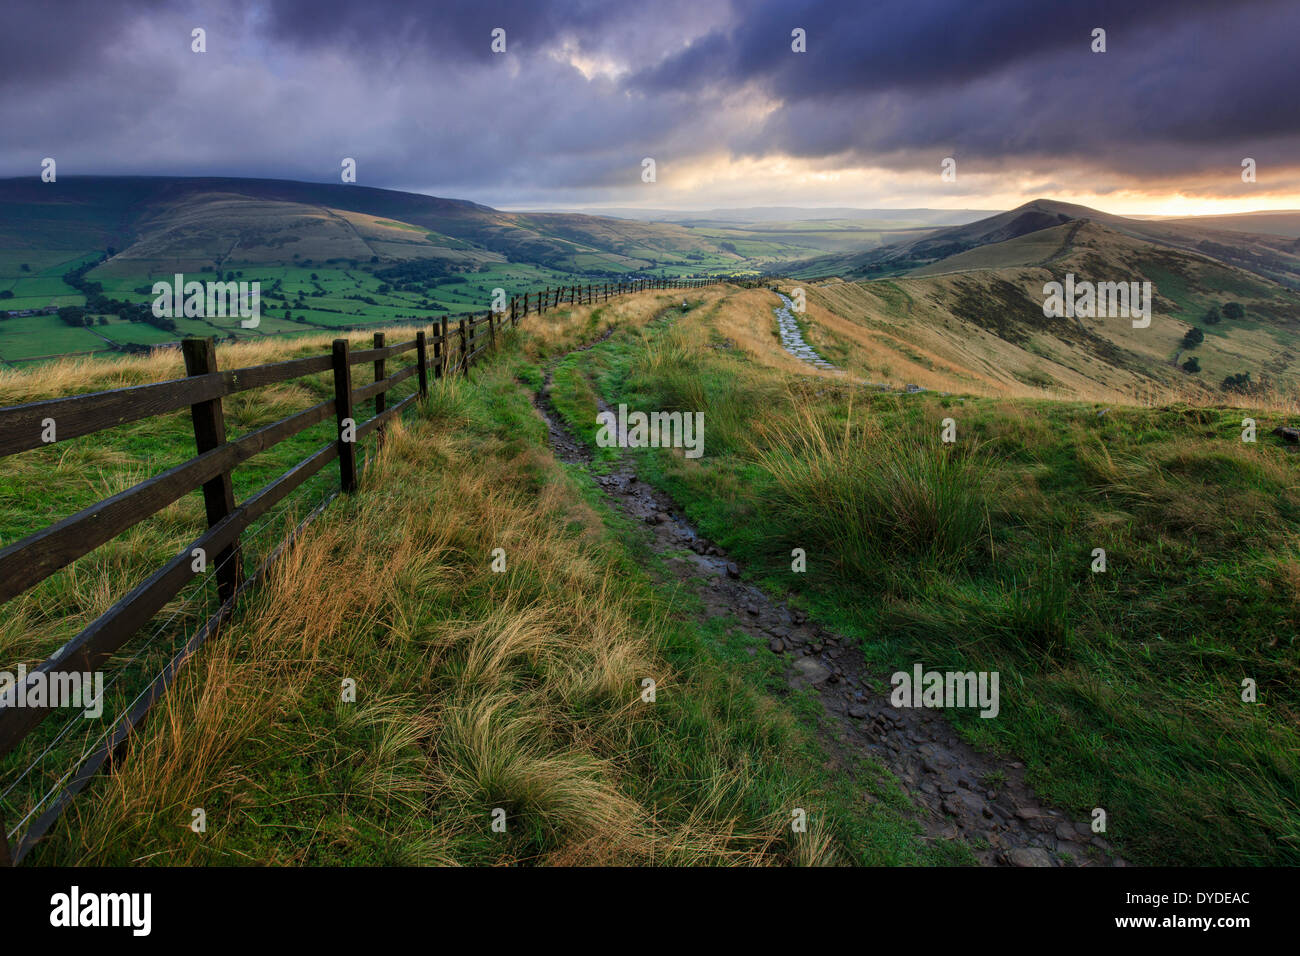 Sunrise at Mam Tor in the Peak District. - Stock Image